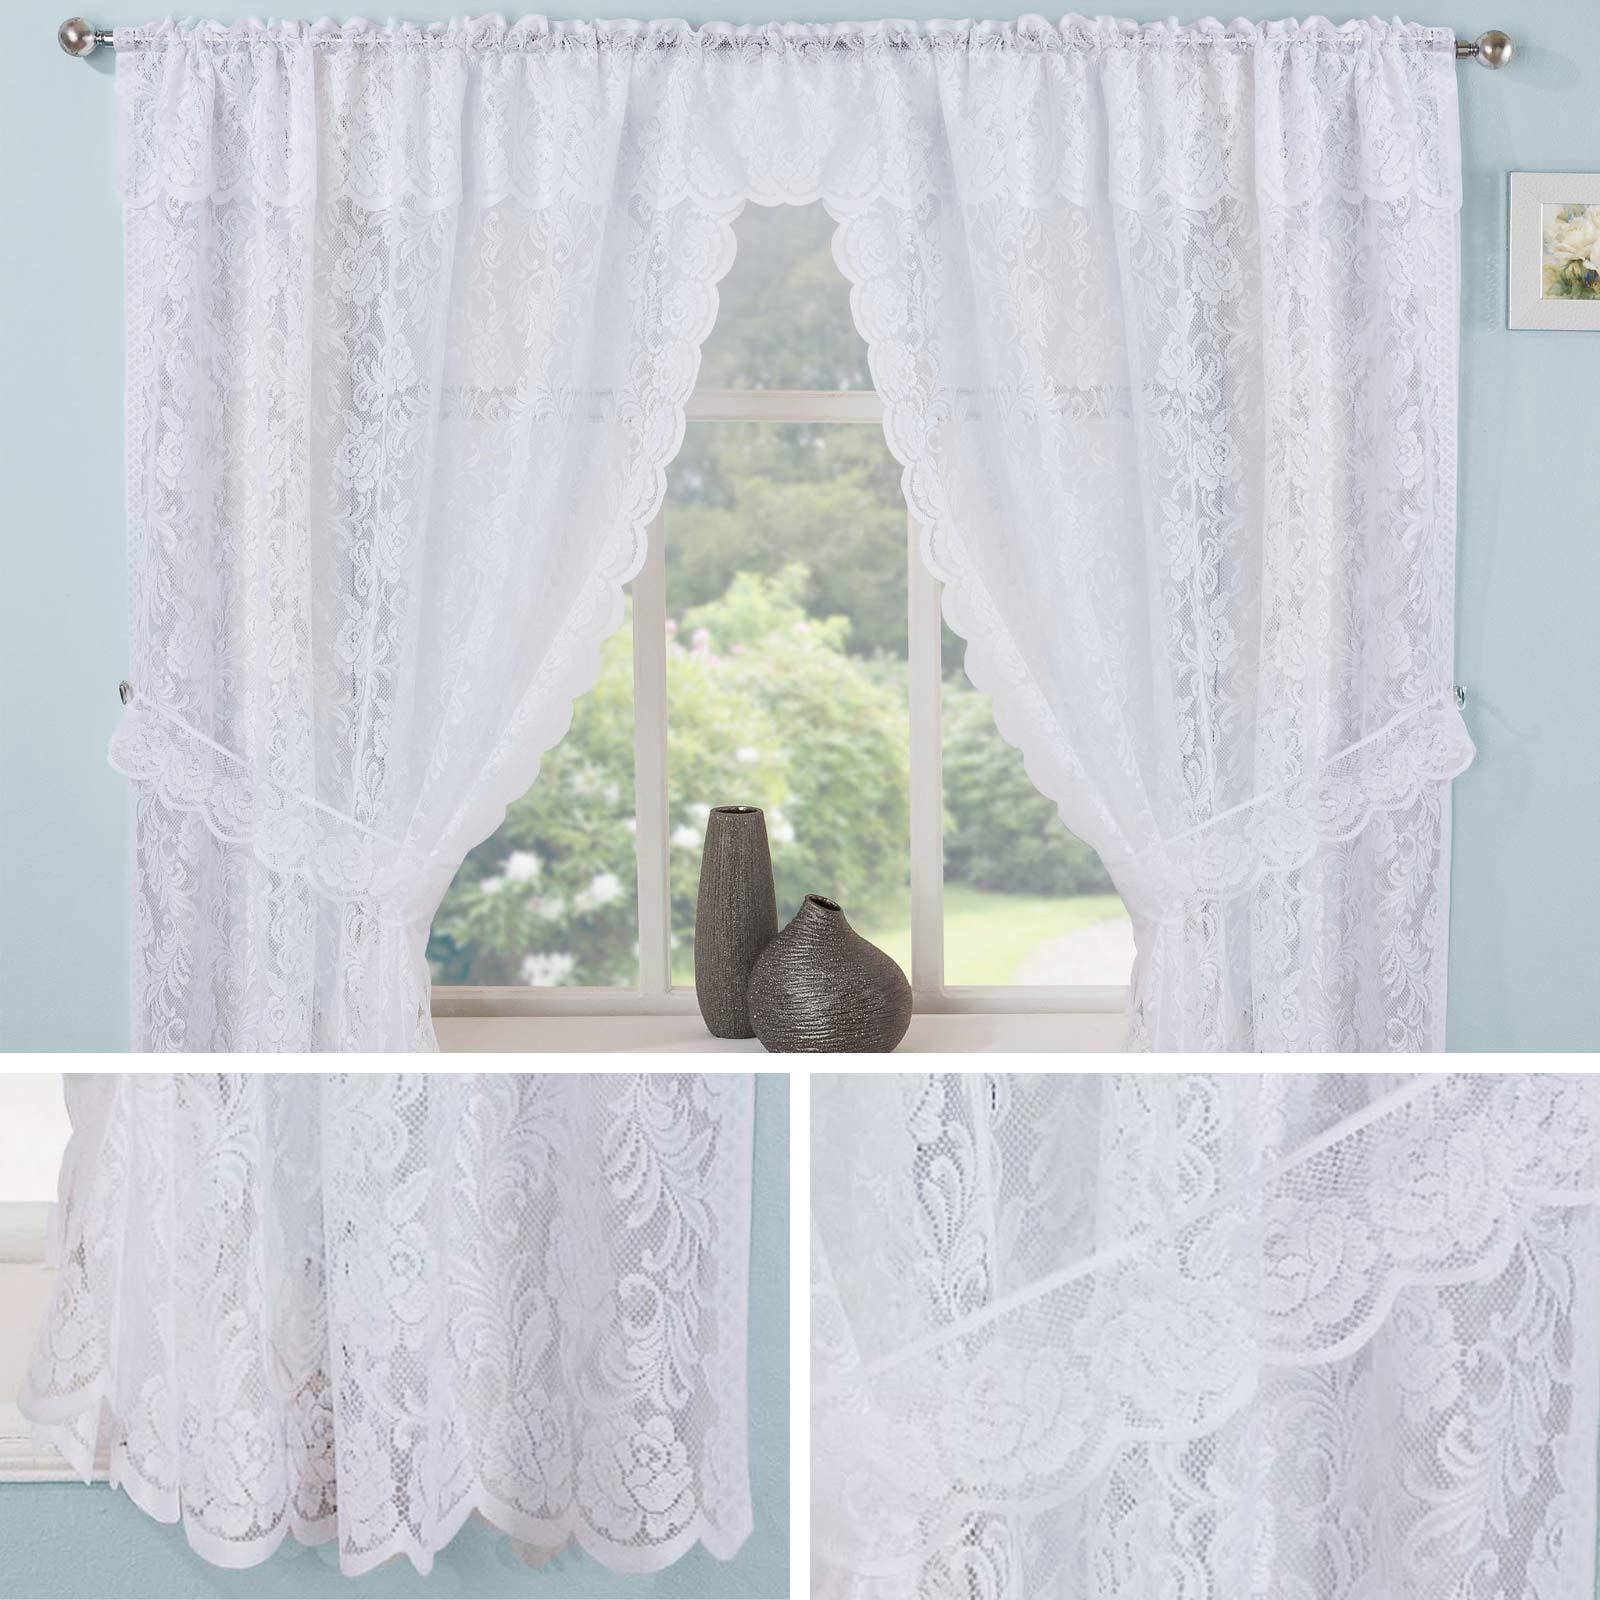 Well Liked Details About Lace Curtain Sets White Kew Complete Kitchen Window Floral Ready Made Curtains Throughout Glasgow Curtain Tier Sets (View 13 of 20)